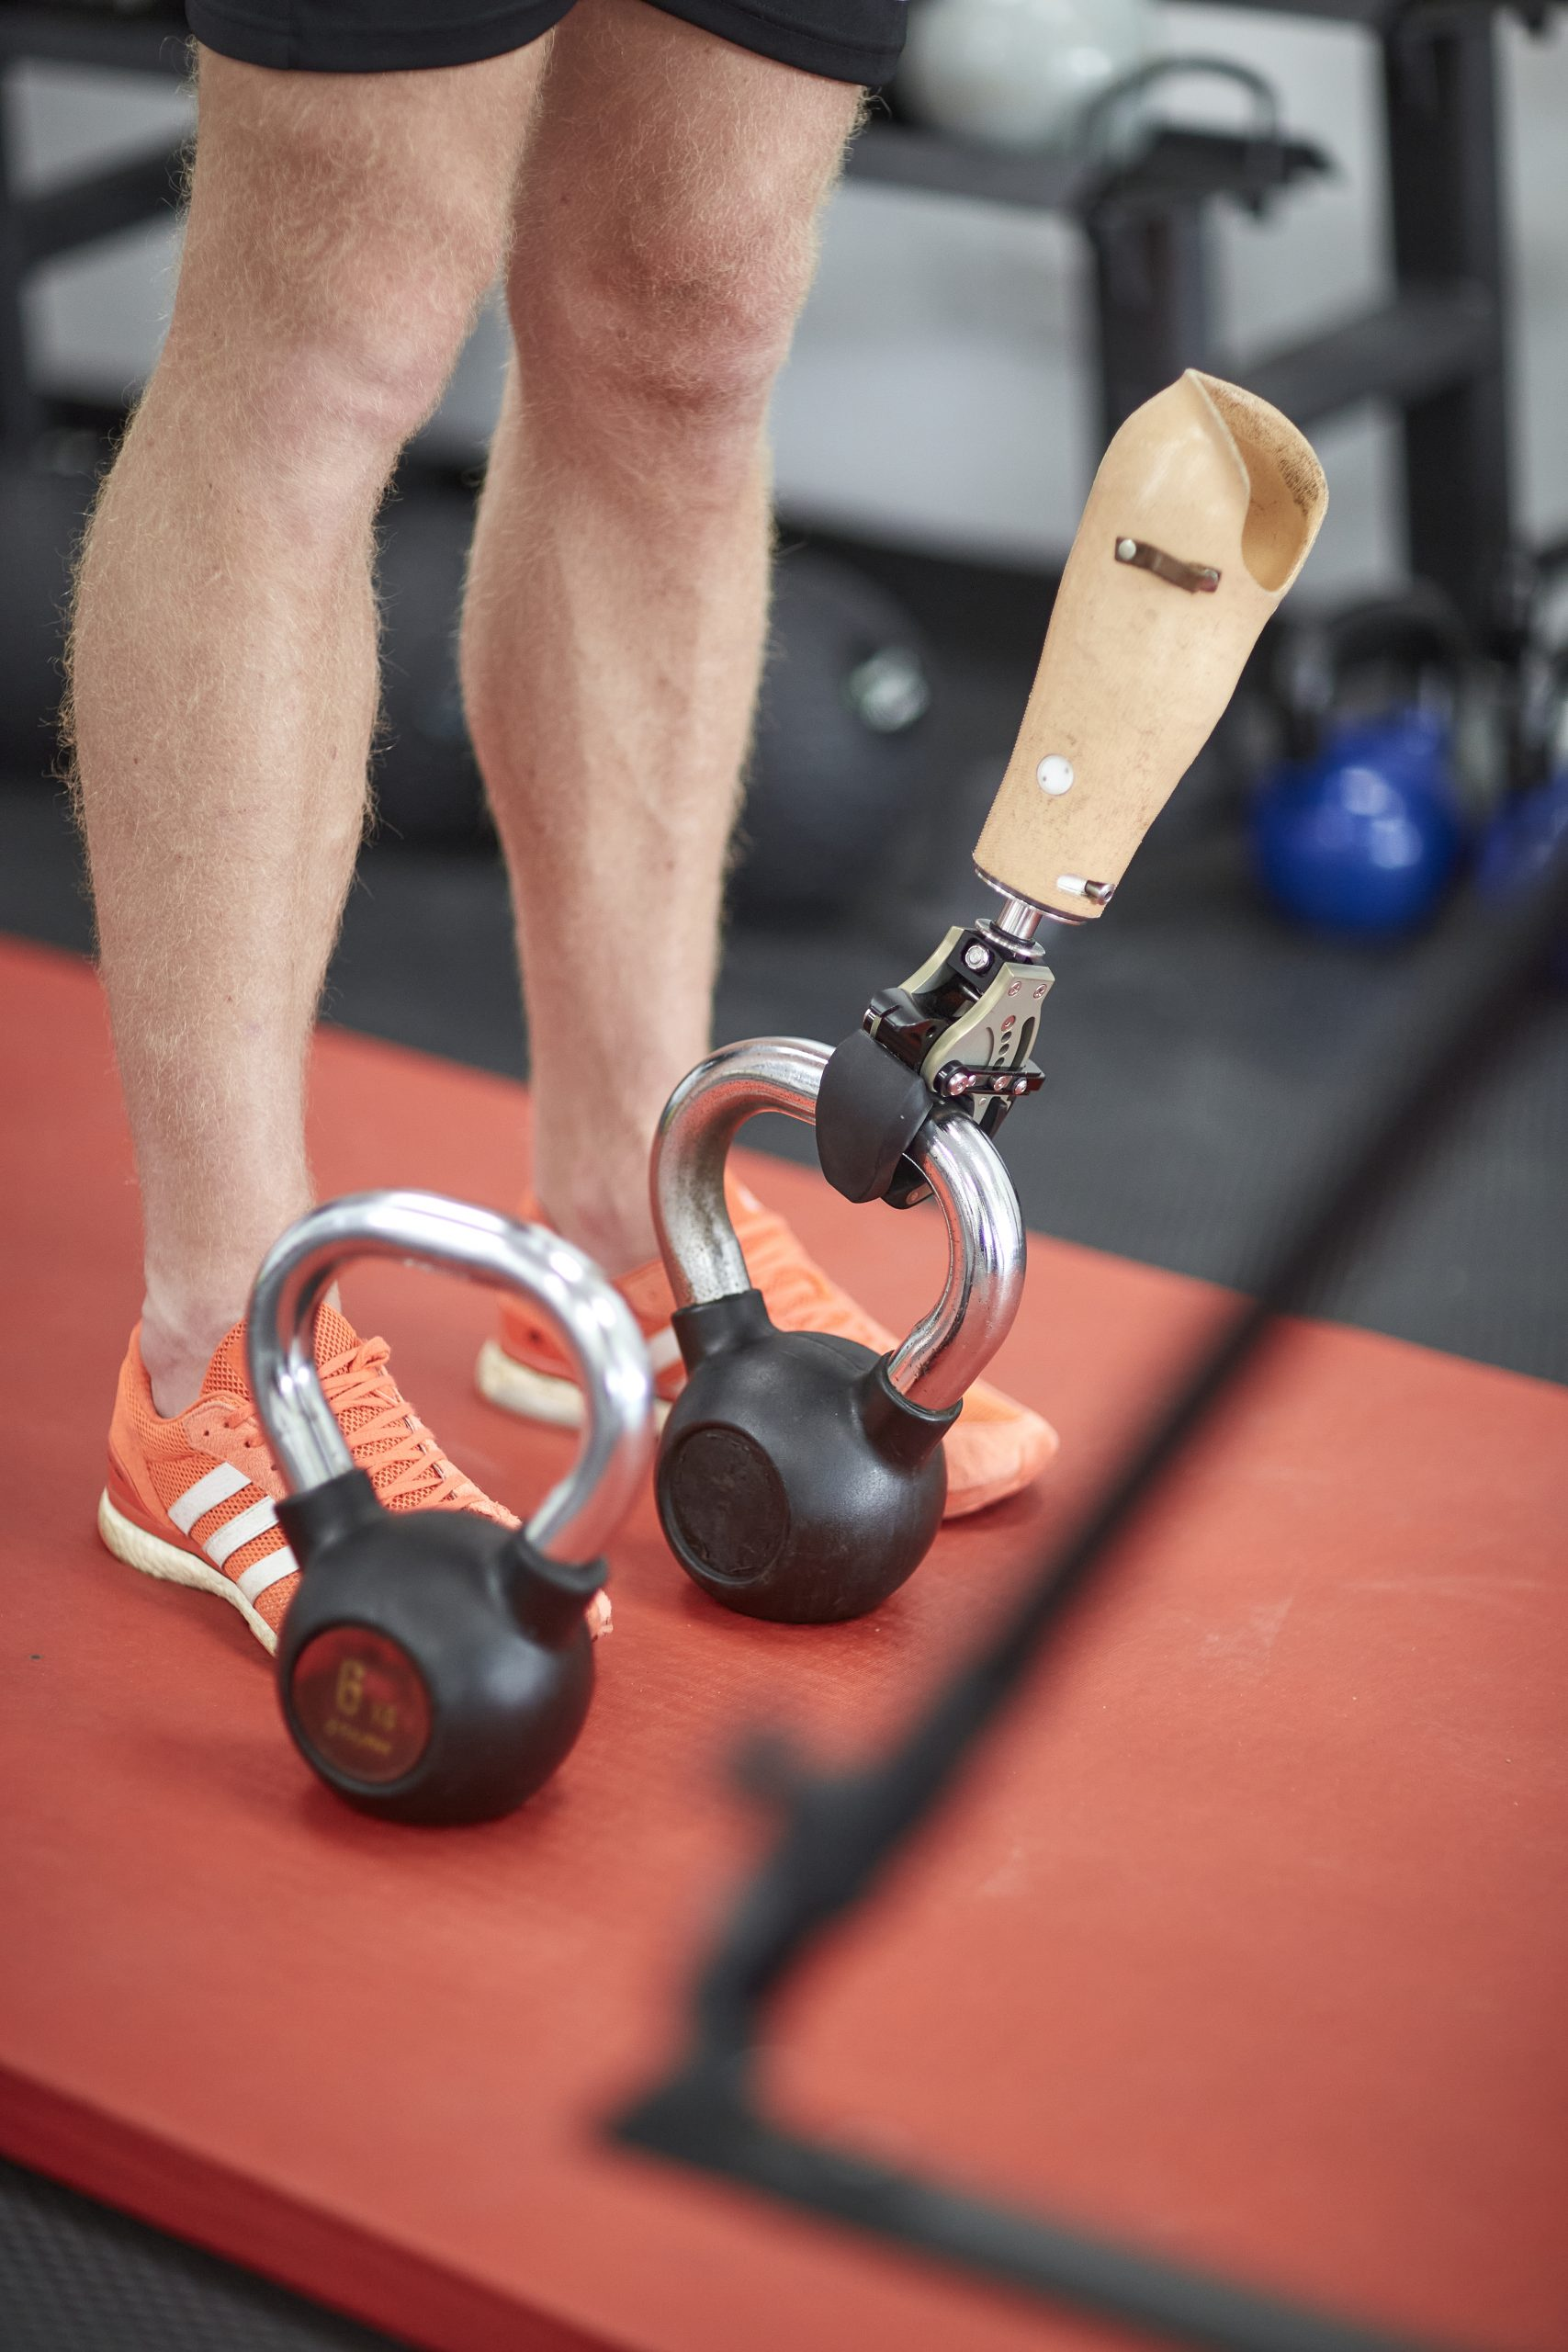 How Accessercise is revolutionising gym access